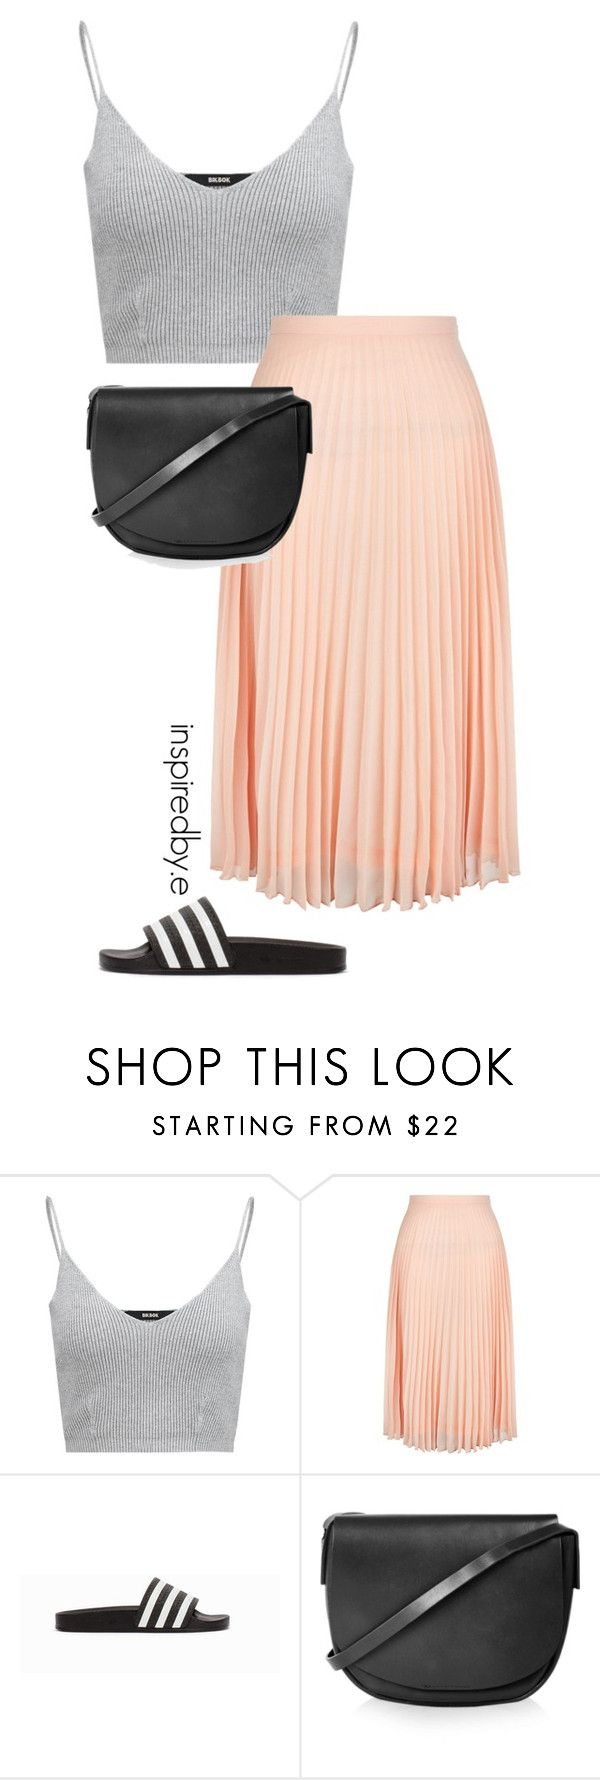 """Interest it"" by emmakiis on Polyvore featuring New Look, adidas Originals and Topshop"